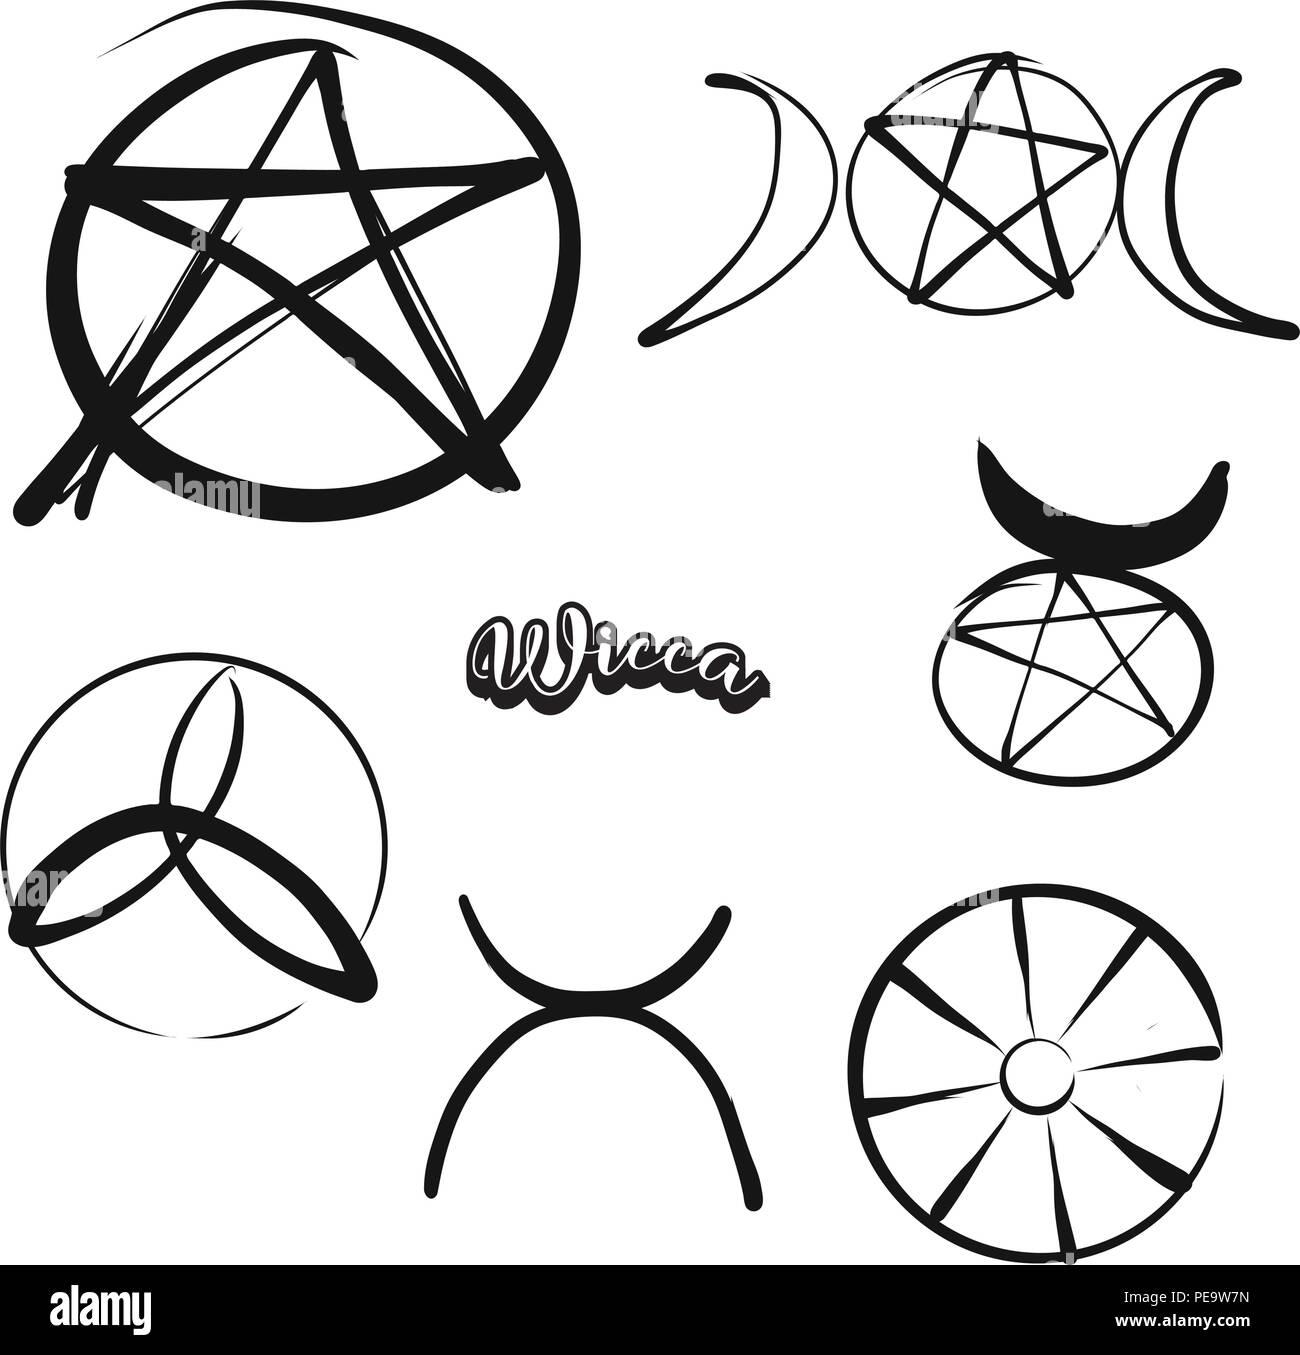 Set Of Hand Drawn Wicca Symbols Various Religious Historical